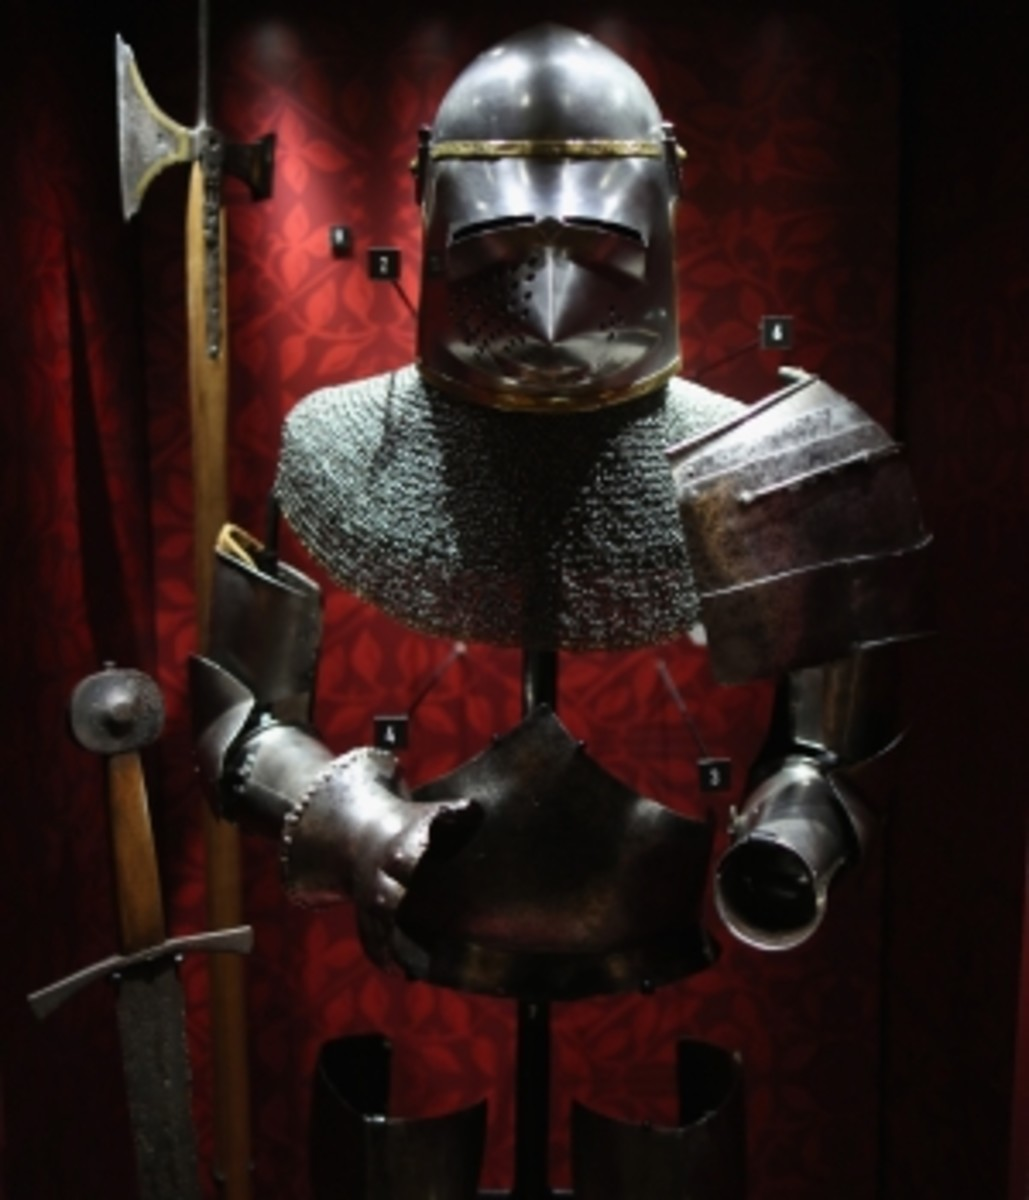 Objects from the Battle of Agincourt on display at the Tower of London on October 22, 2015, to commemorate the battle's 600th anniversary.